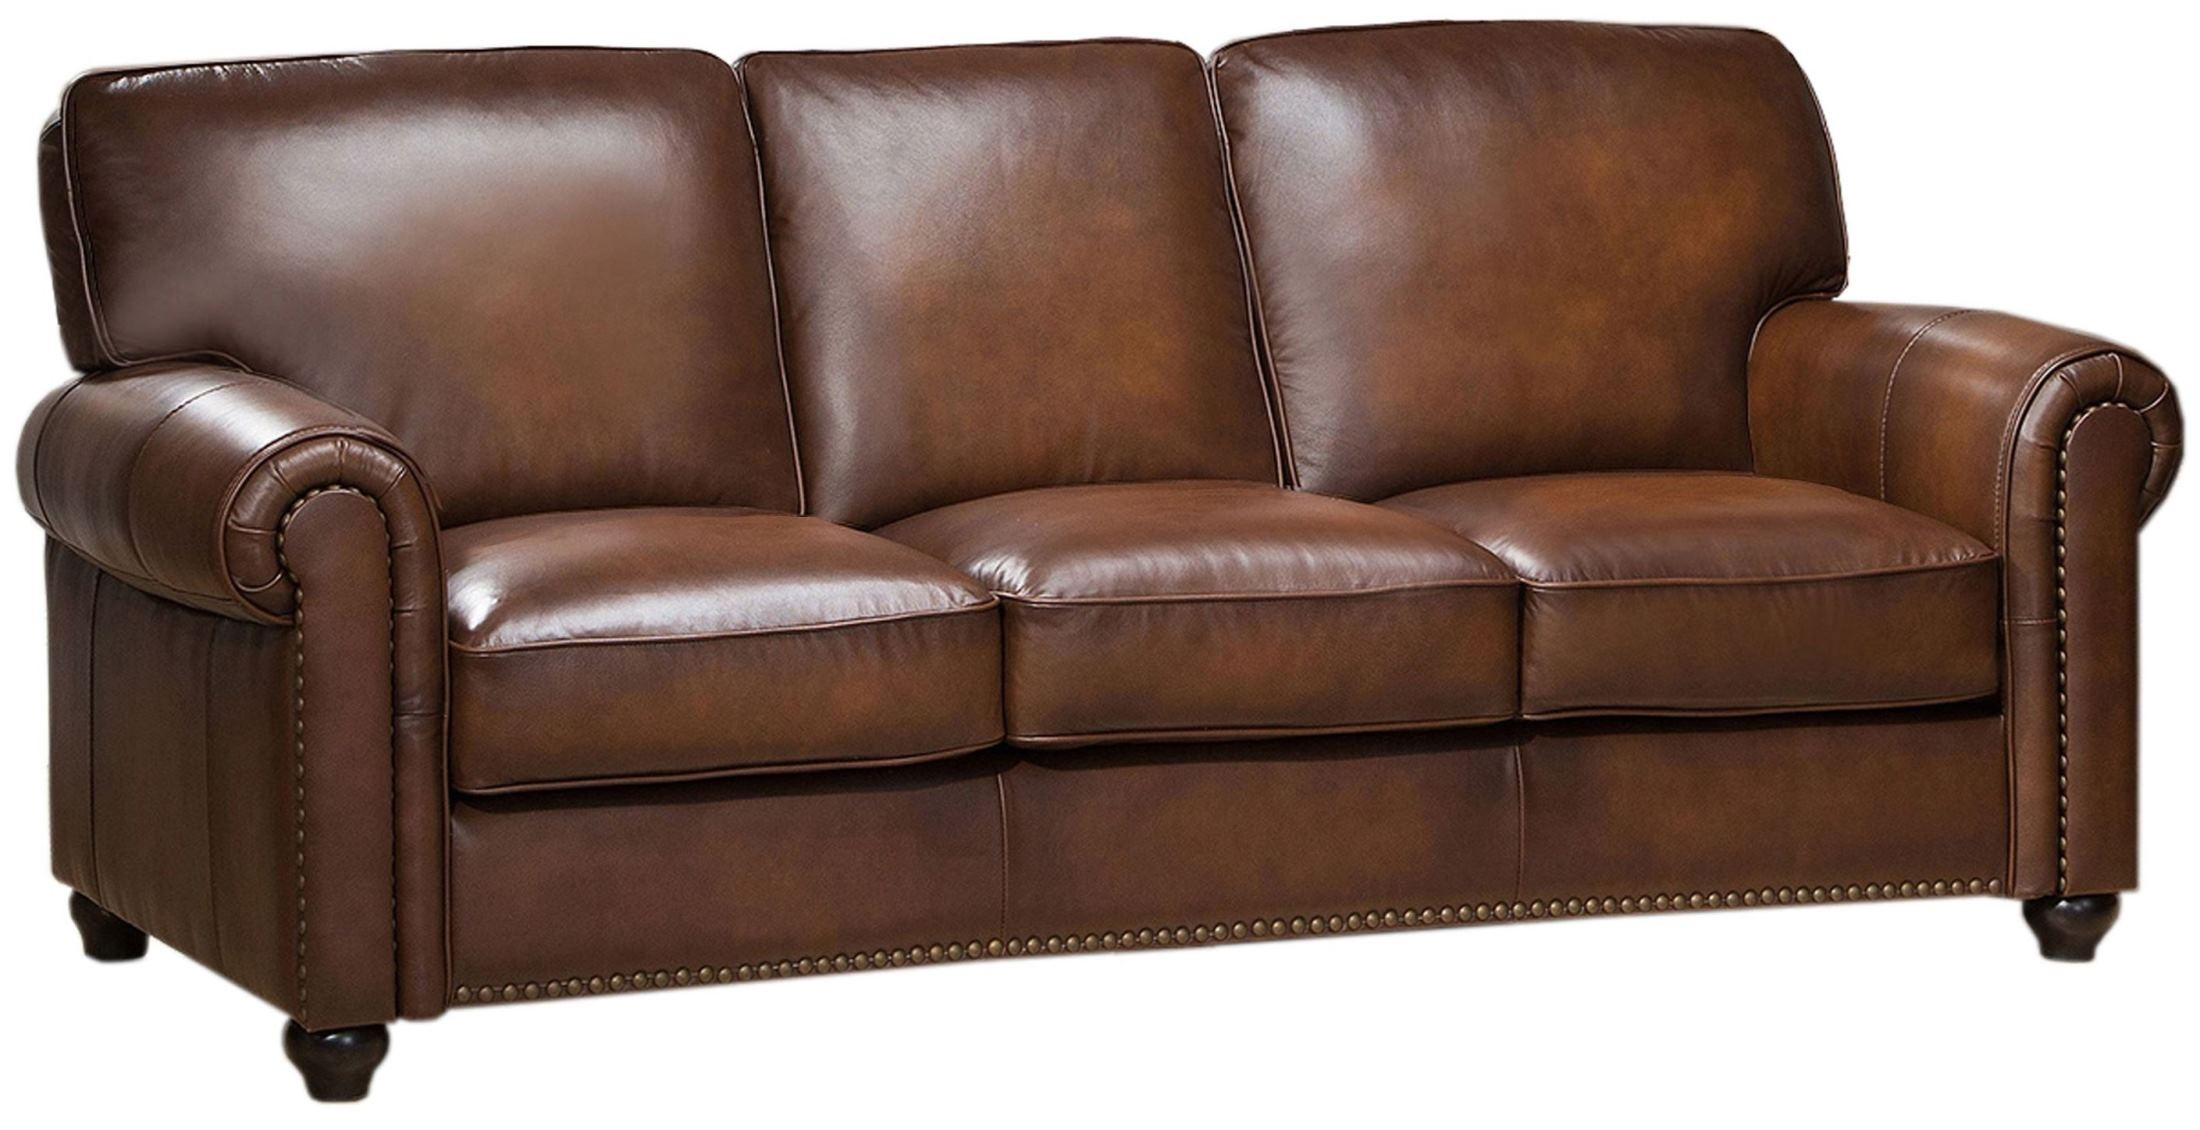 royale camel brown leather sofa from amax leather coleman furniture